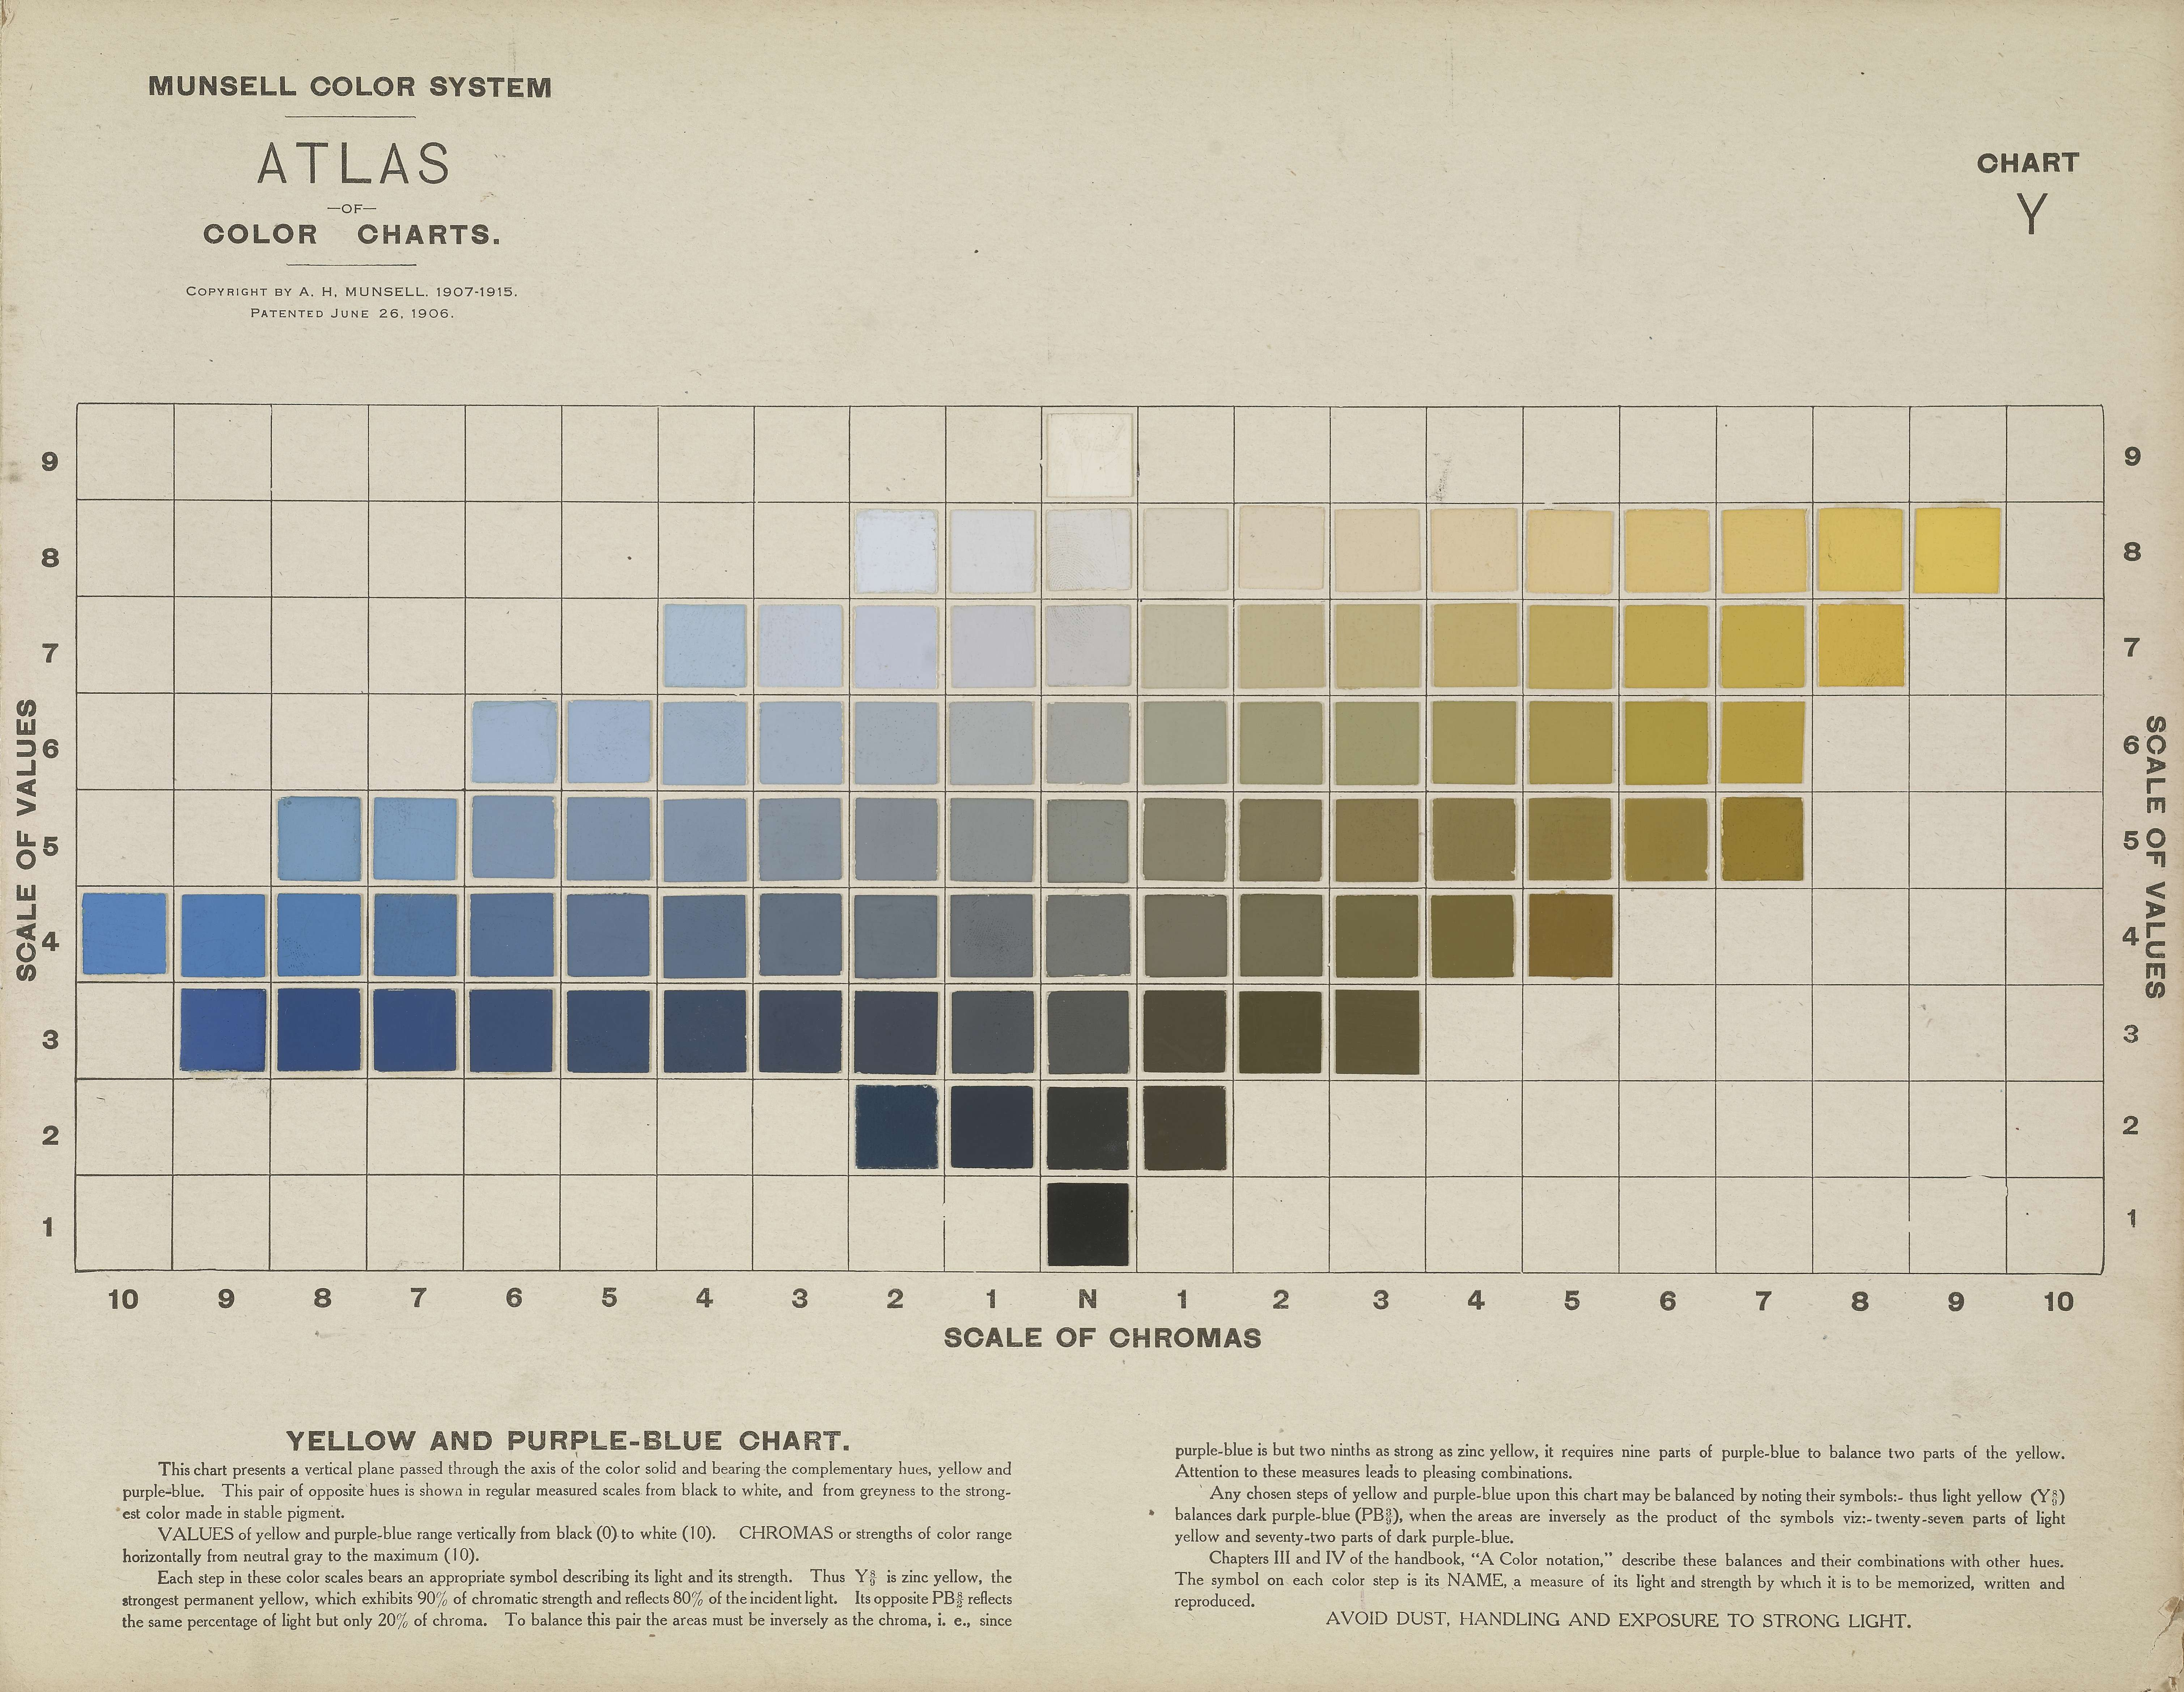 Matching color atlas of the munsell color system malden mass wadsworth howland co inc printers ca 1915 gift of binney smith inc makers of crayola nvjuhfo Image collections